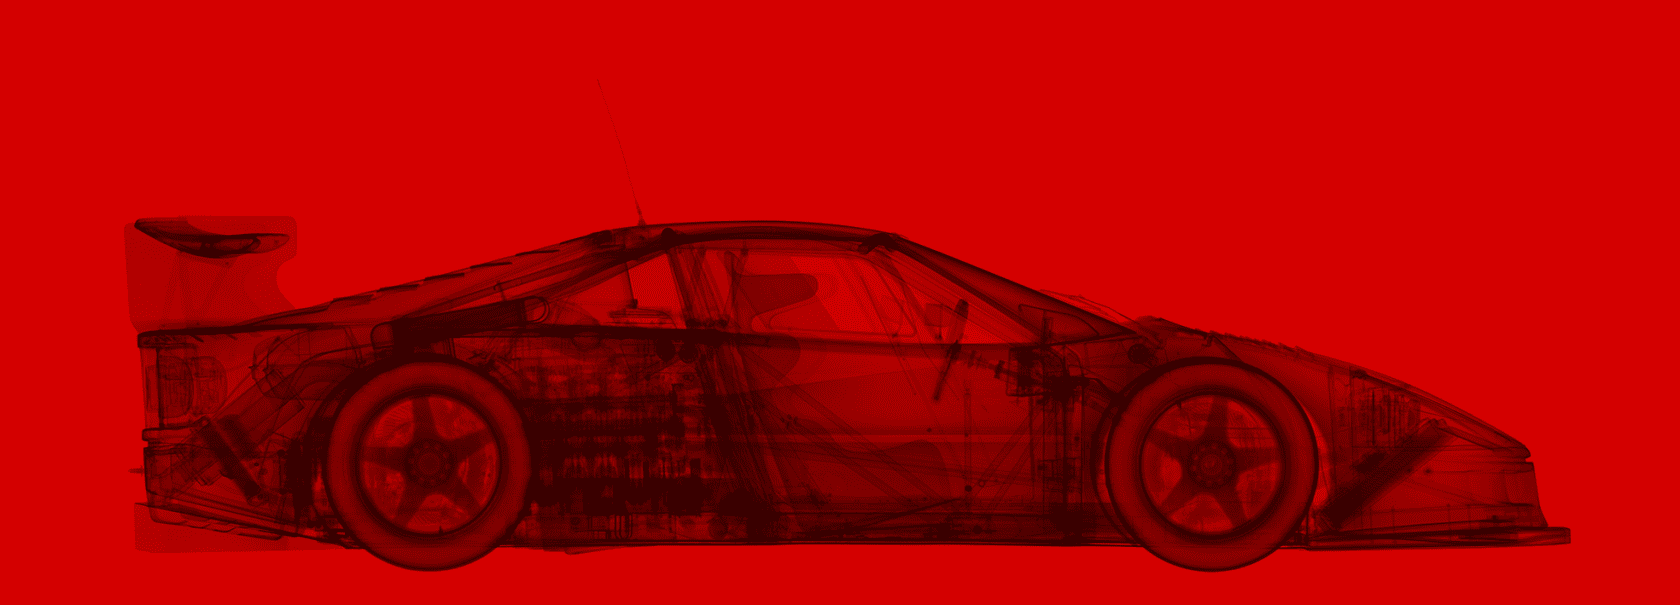 Nick Veasey 1945 Ferrari F40 GTE Rosso Corsa Red Diasec C-Type Print onto Dibond with Plexi Face